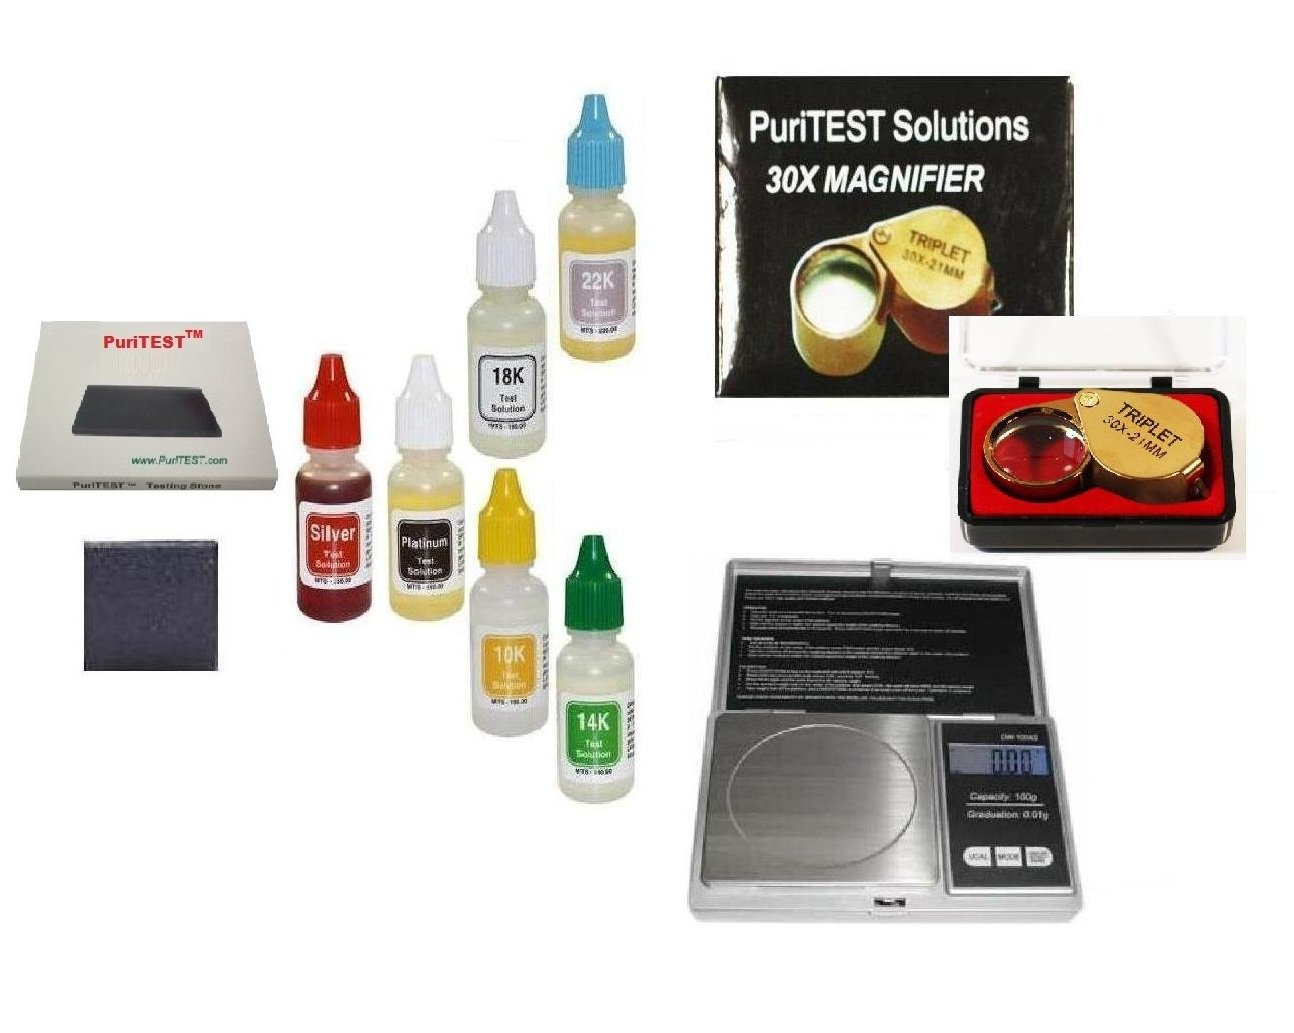 Jeweler's Full-Set Precious Metals Testing Kit Plus Jewelry Scale, Diamond Magnifyer and More! PuriTEST 4336835848